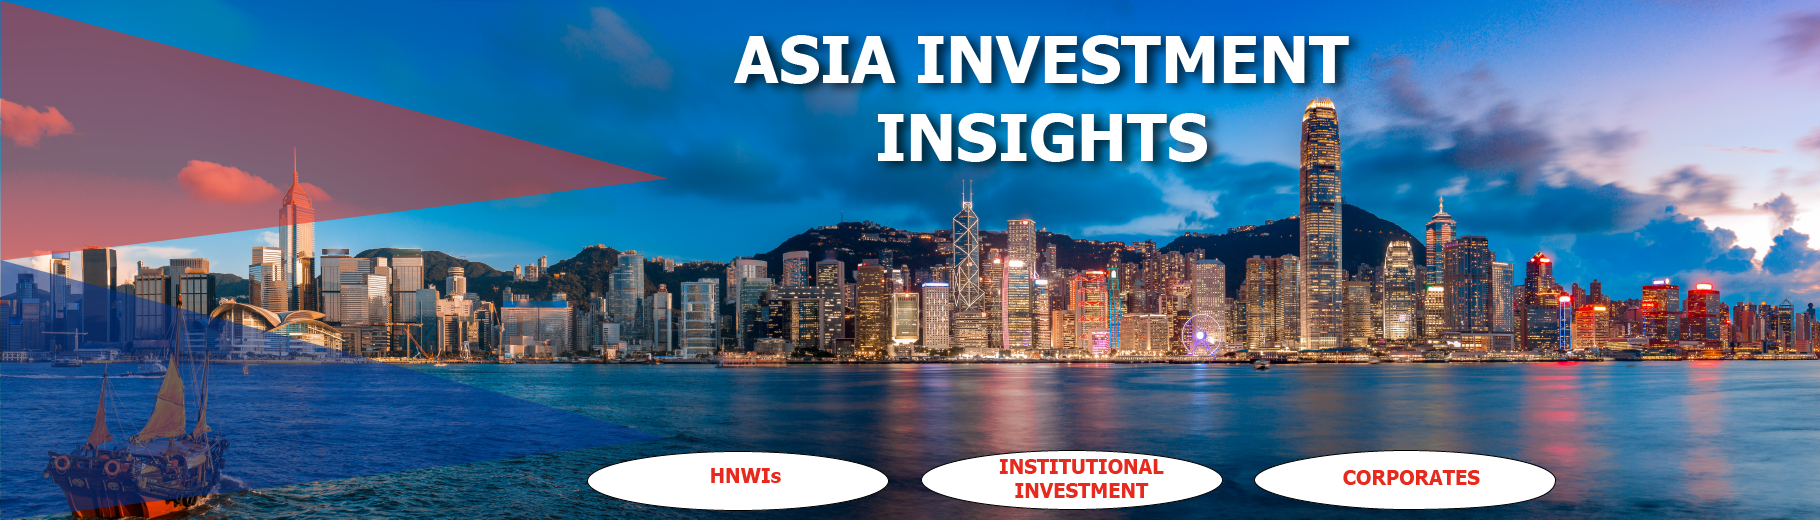 Asian Investors Identify Path to Future Growth Through Use of IFCs Like BVI